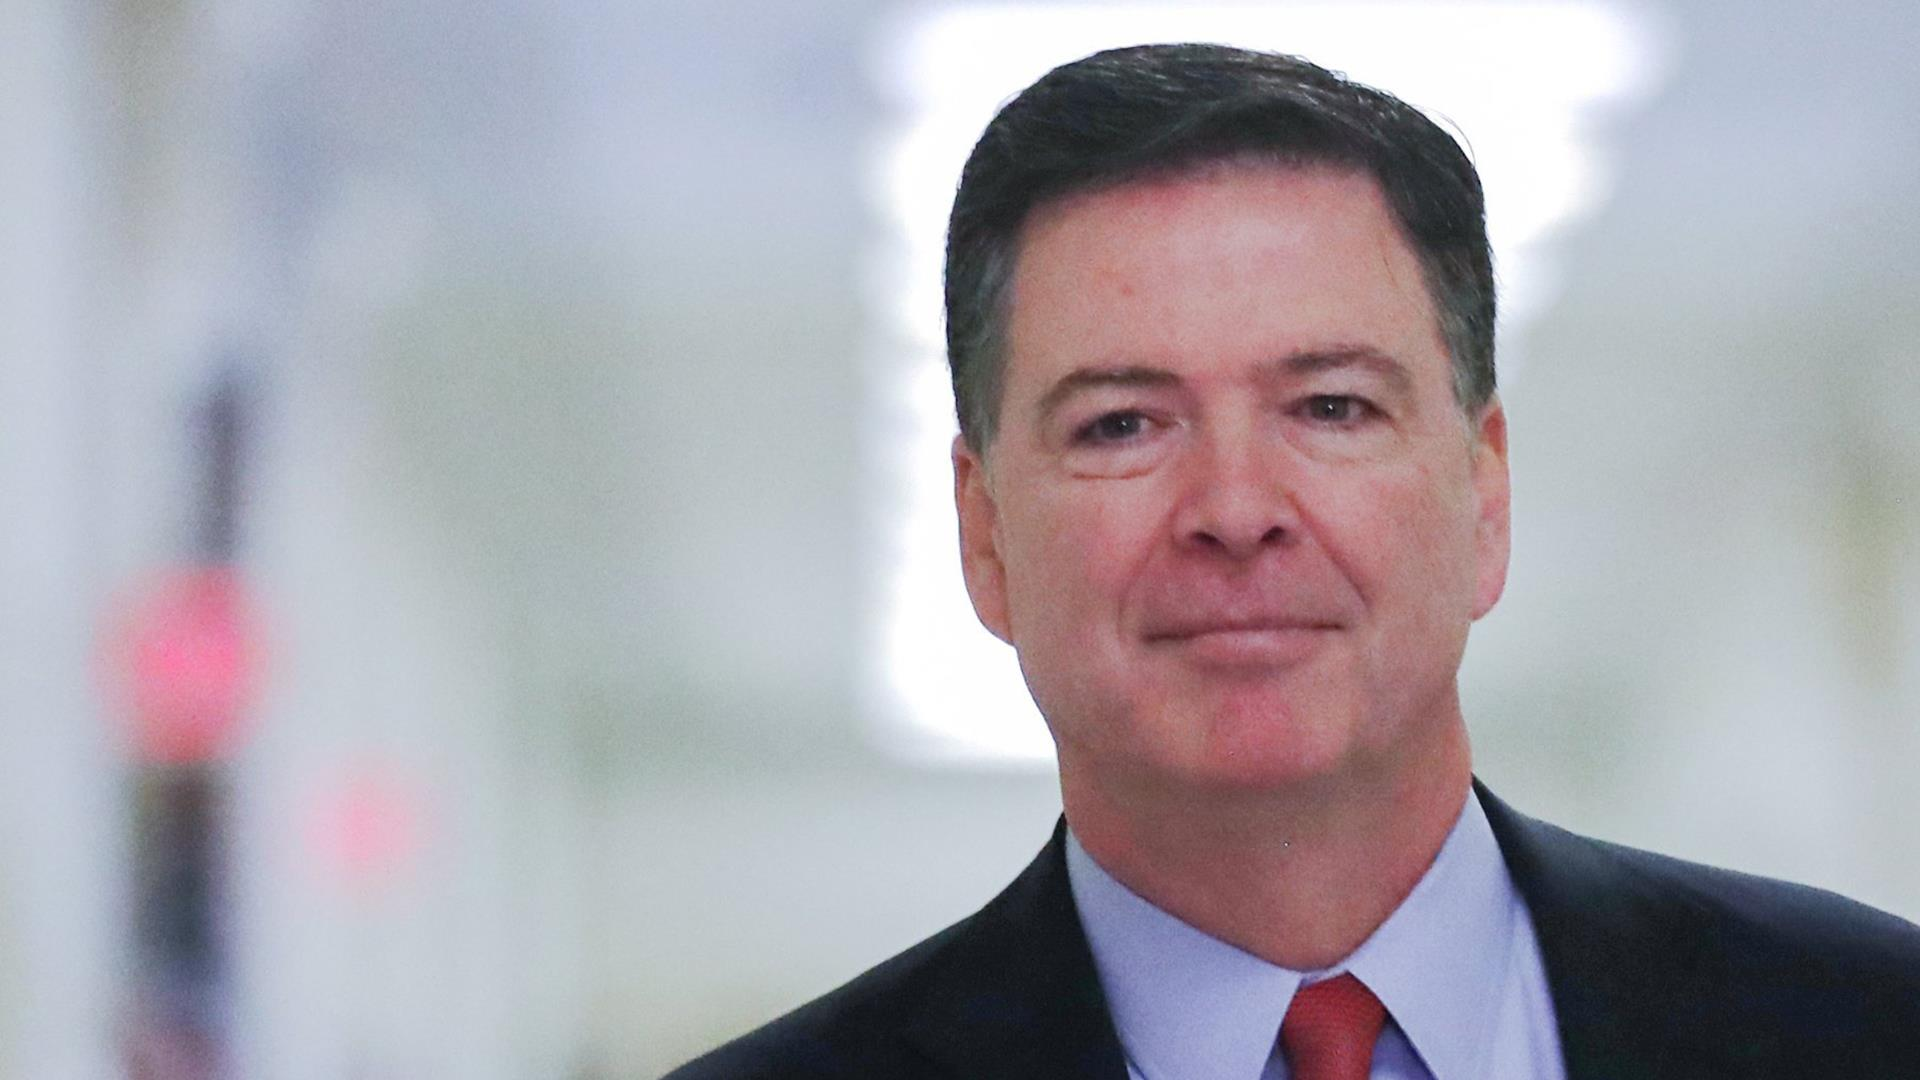 Comey: Someone has to stand up for the FBI, 'rule of law'